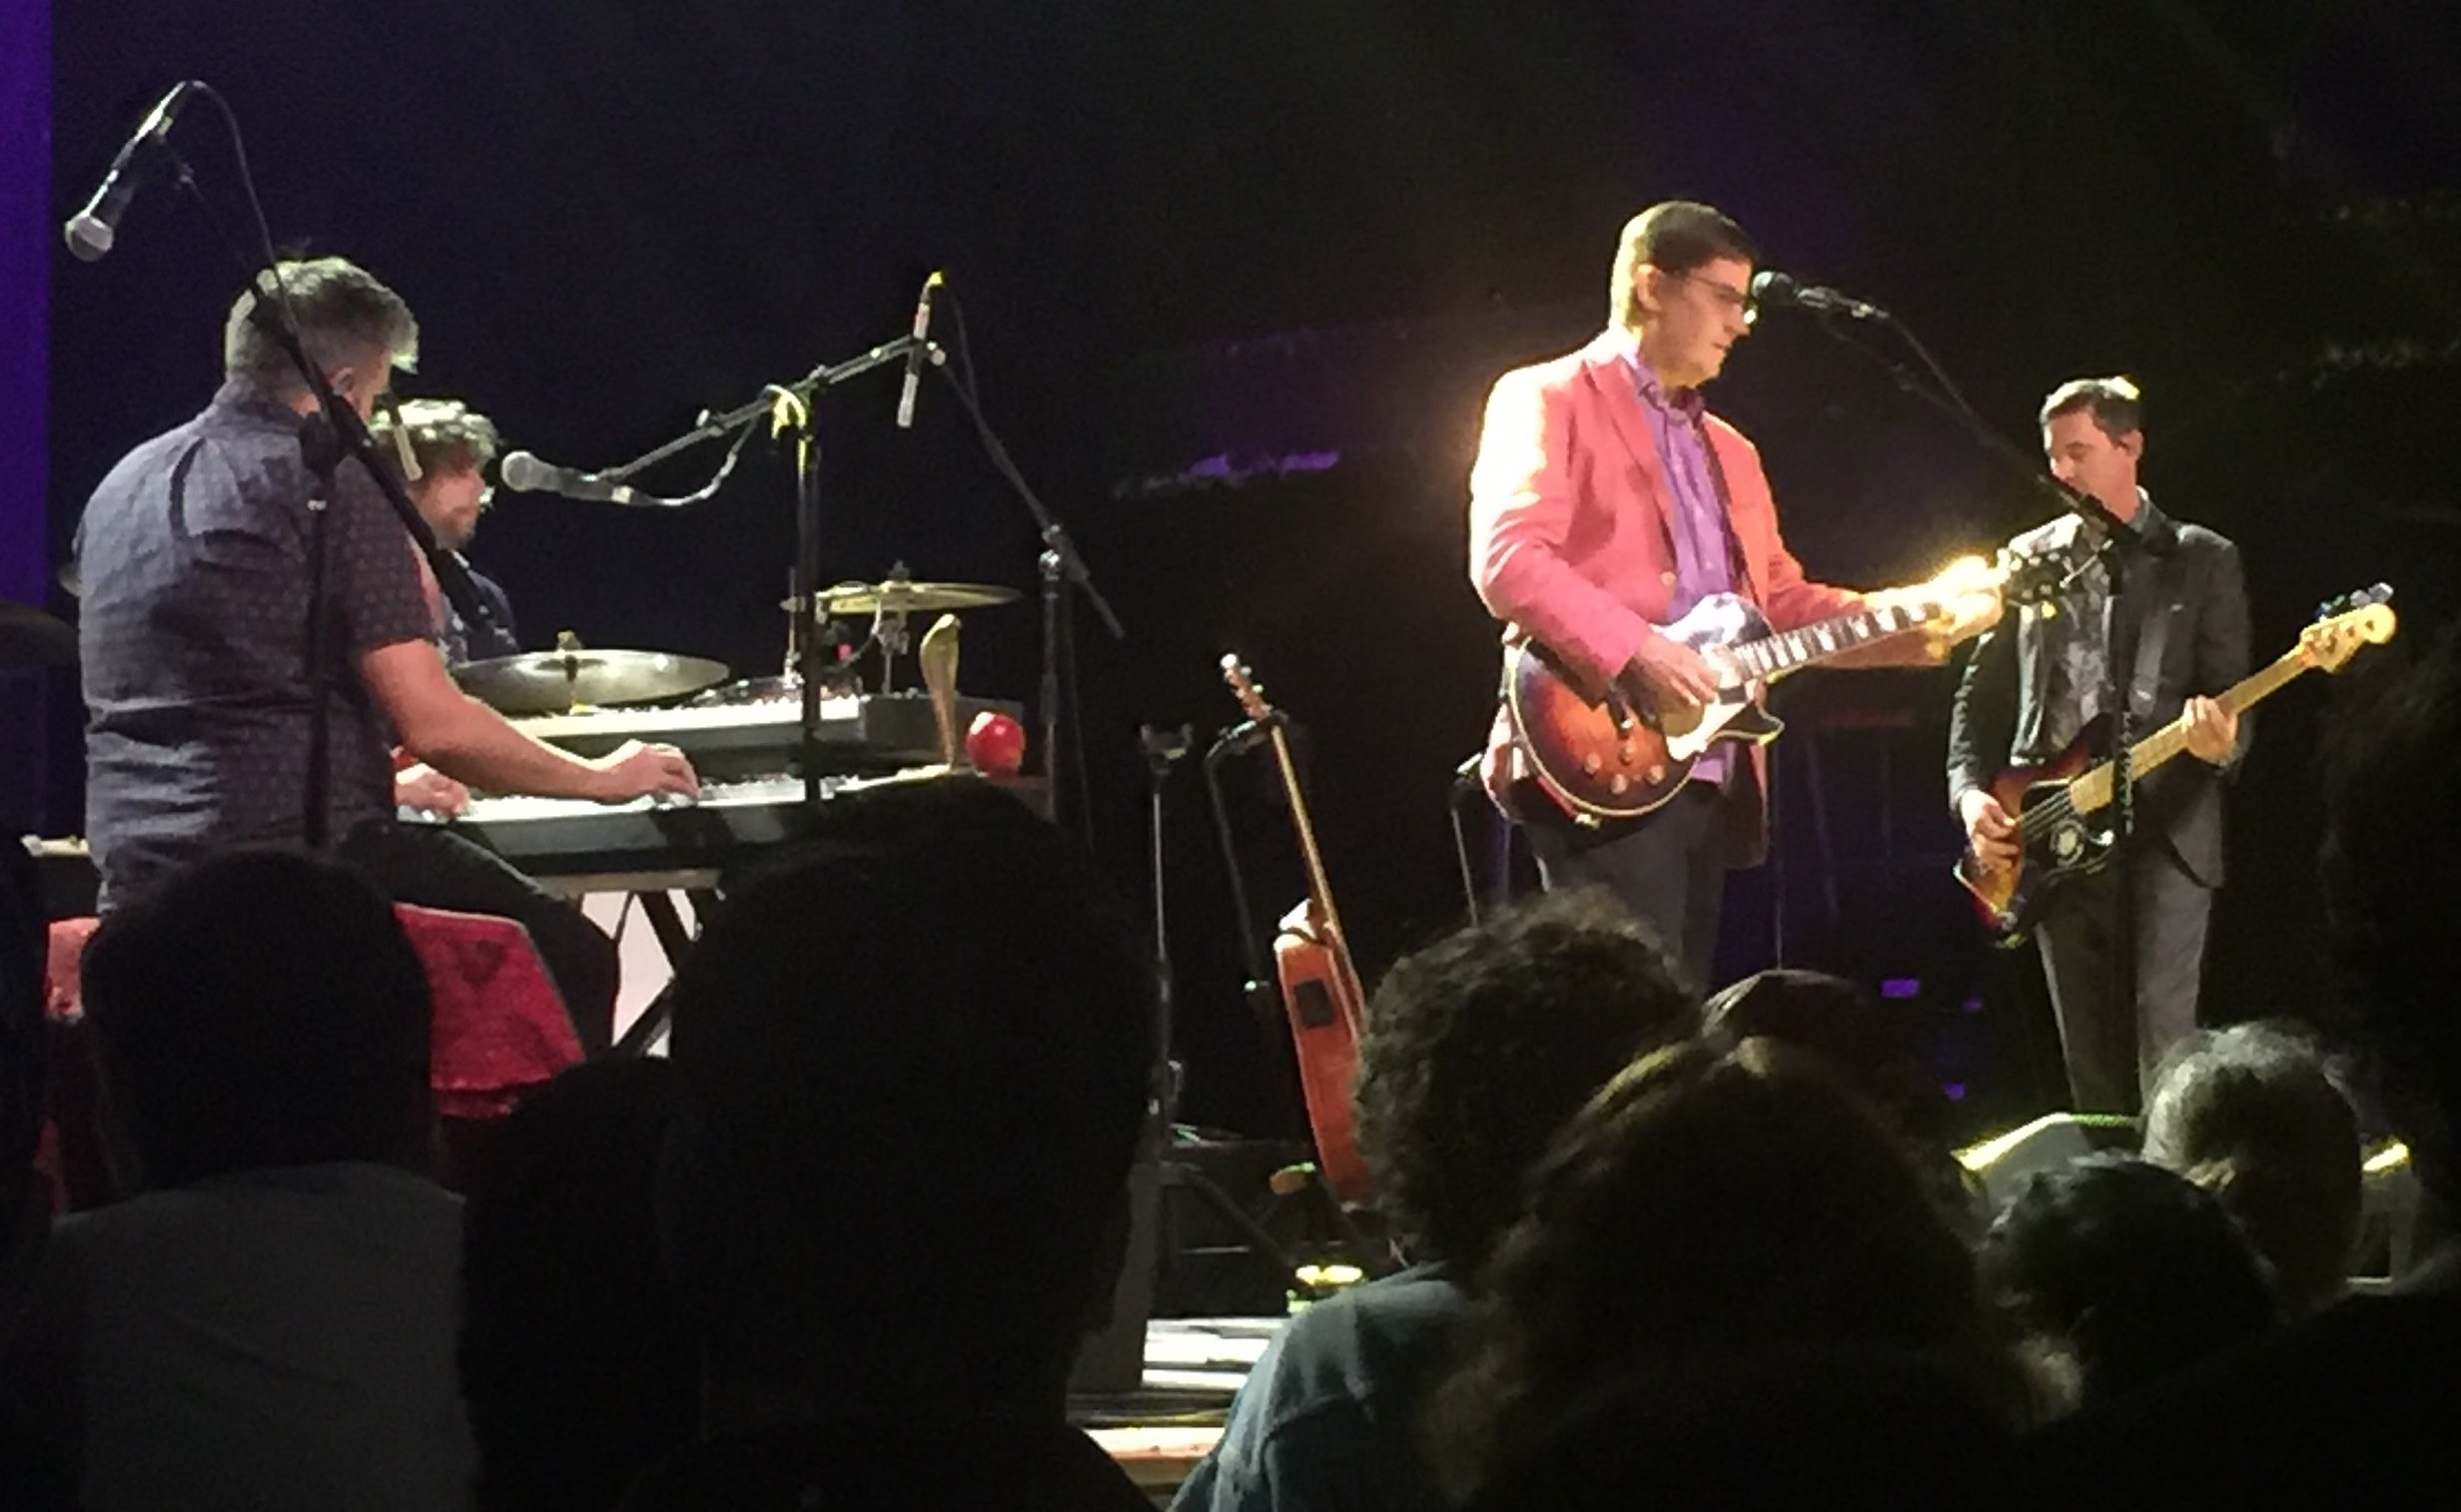 SHOW REVIEW: The Mountain Goats @ Anaheim House of Blues